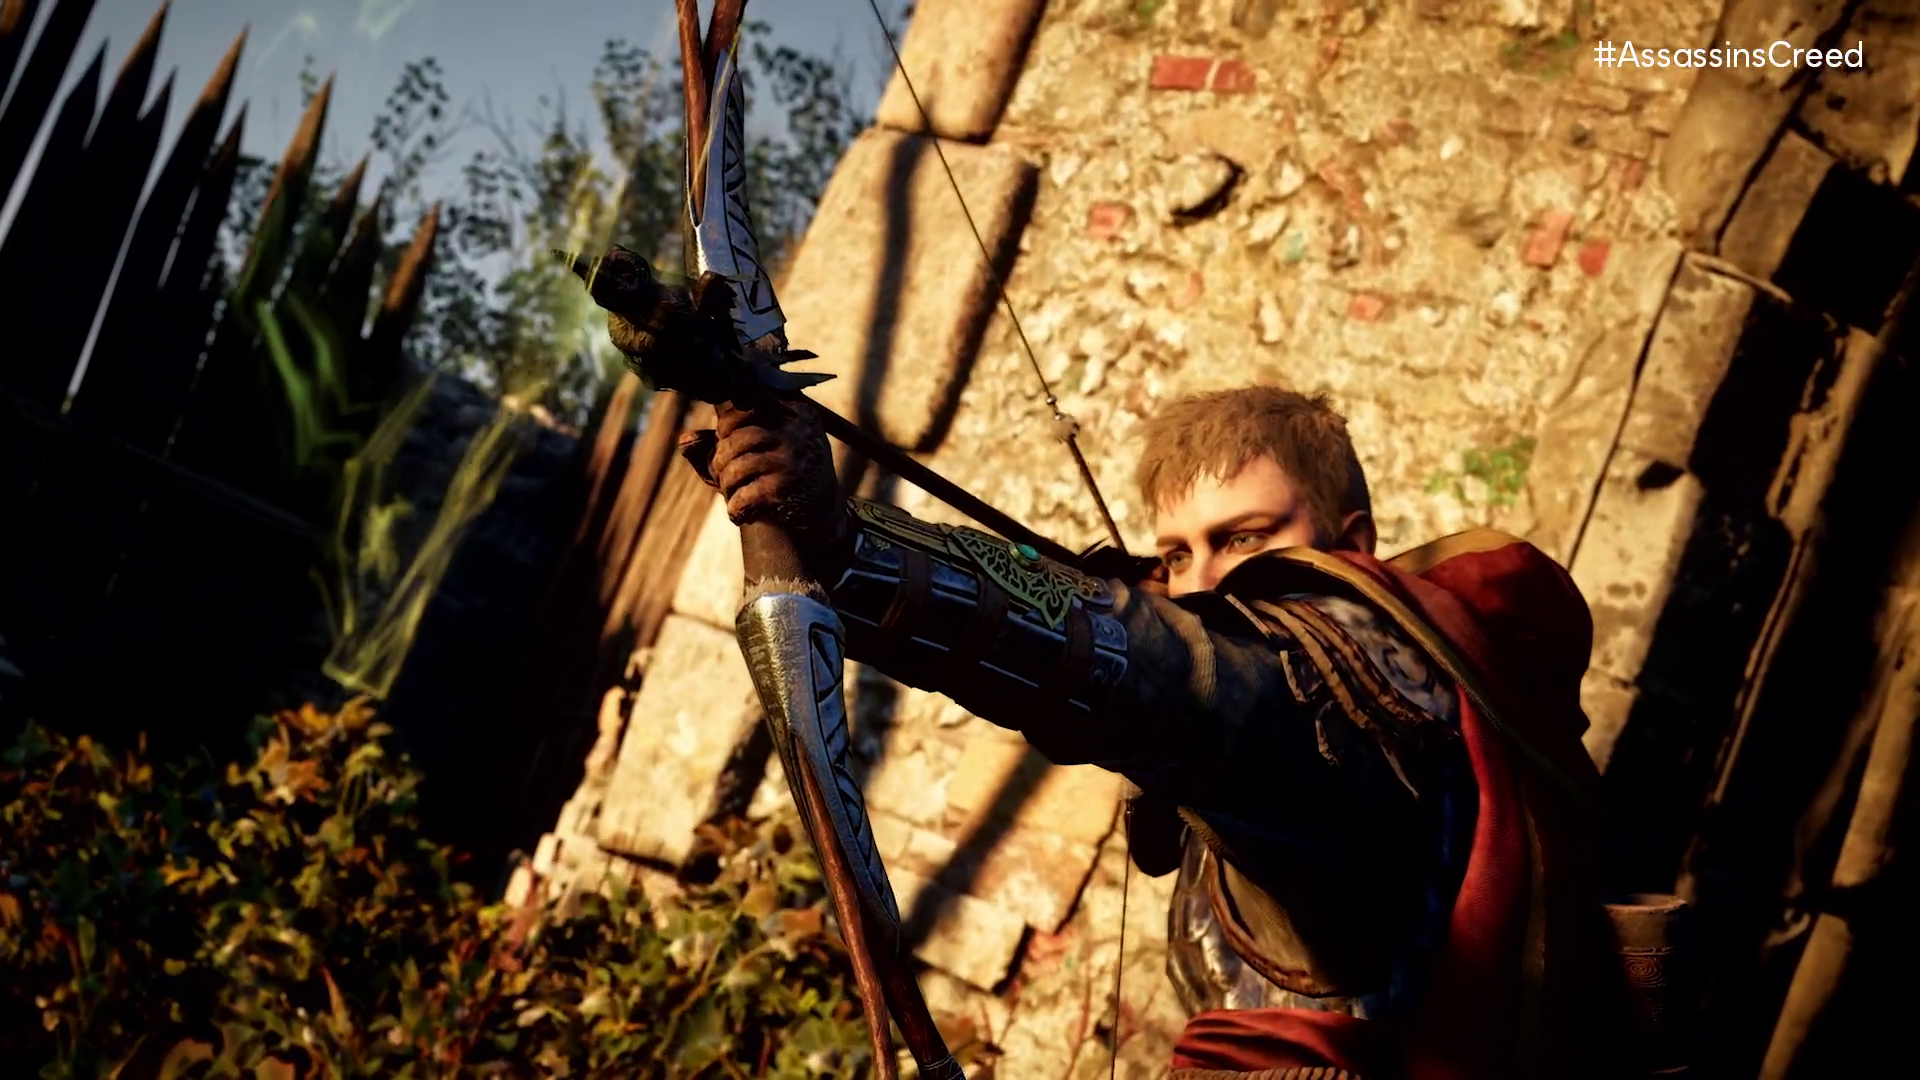 an archer aiming a bow in Assassin's Creed Valhalla: Siege of Paris